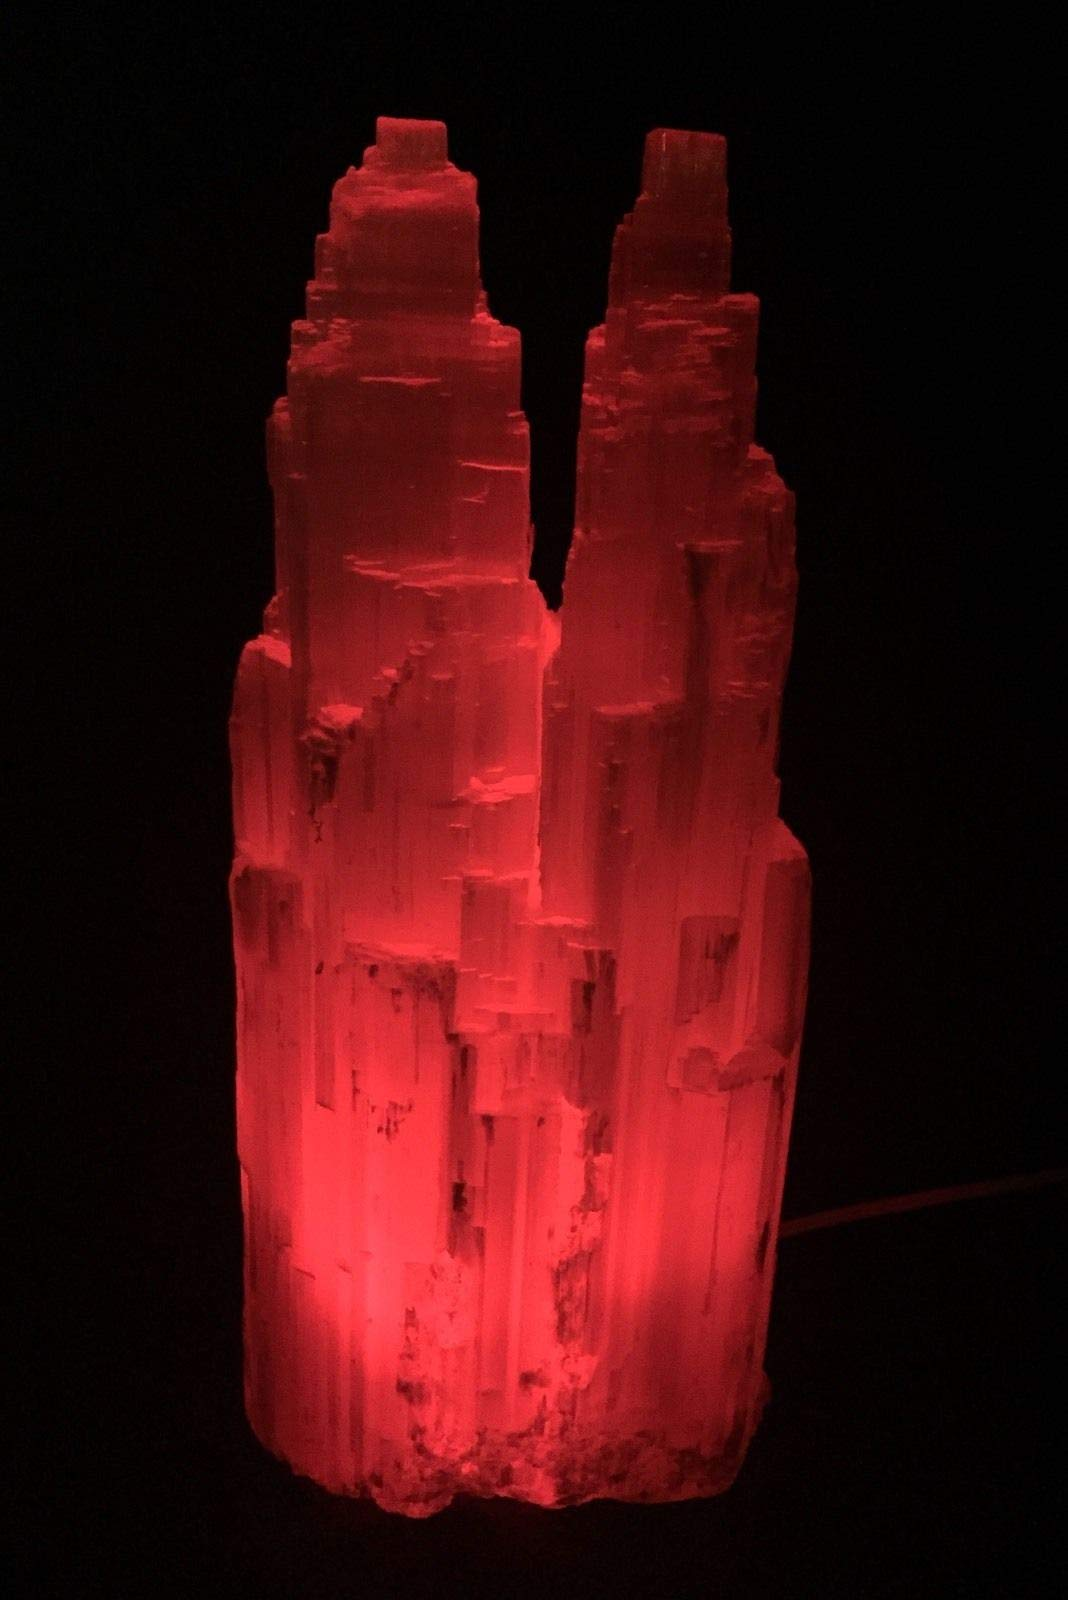 Large Selenite Lamp W/Cord Red LED Bulb Selenite Crystal Tower Two Point Double.Natural Crystals & Rocks for Cabbing, Cutting, Lapidary, Tumbling, Polishing, Wire Wrapping, Wicca by JumpingLight (Image #2)